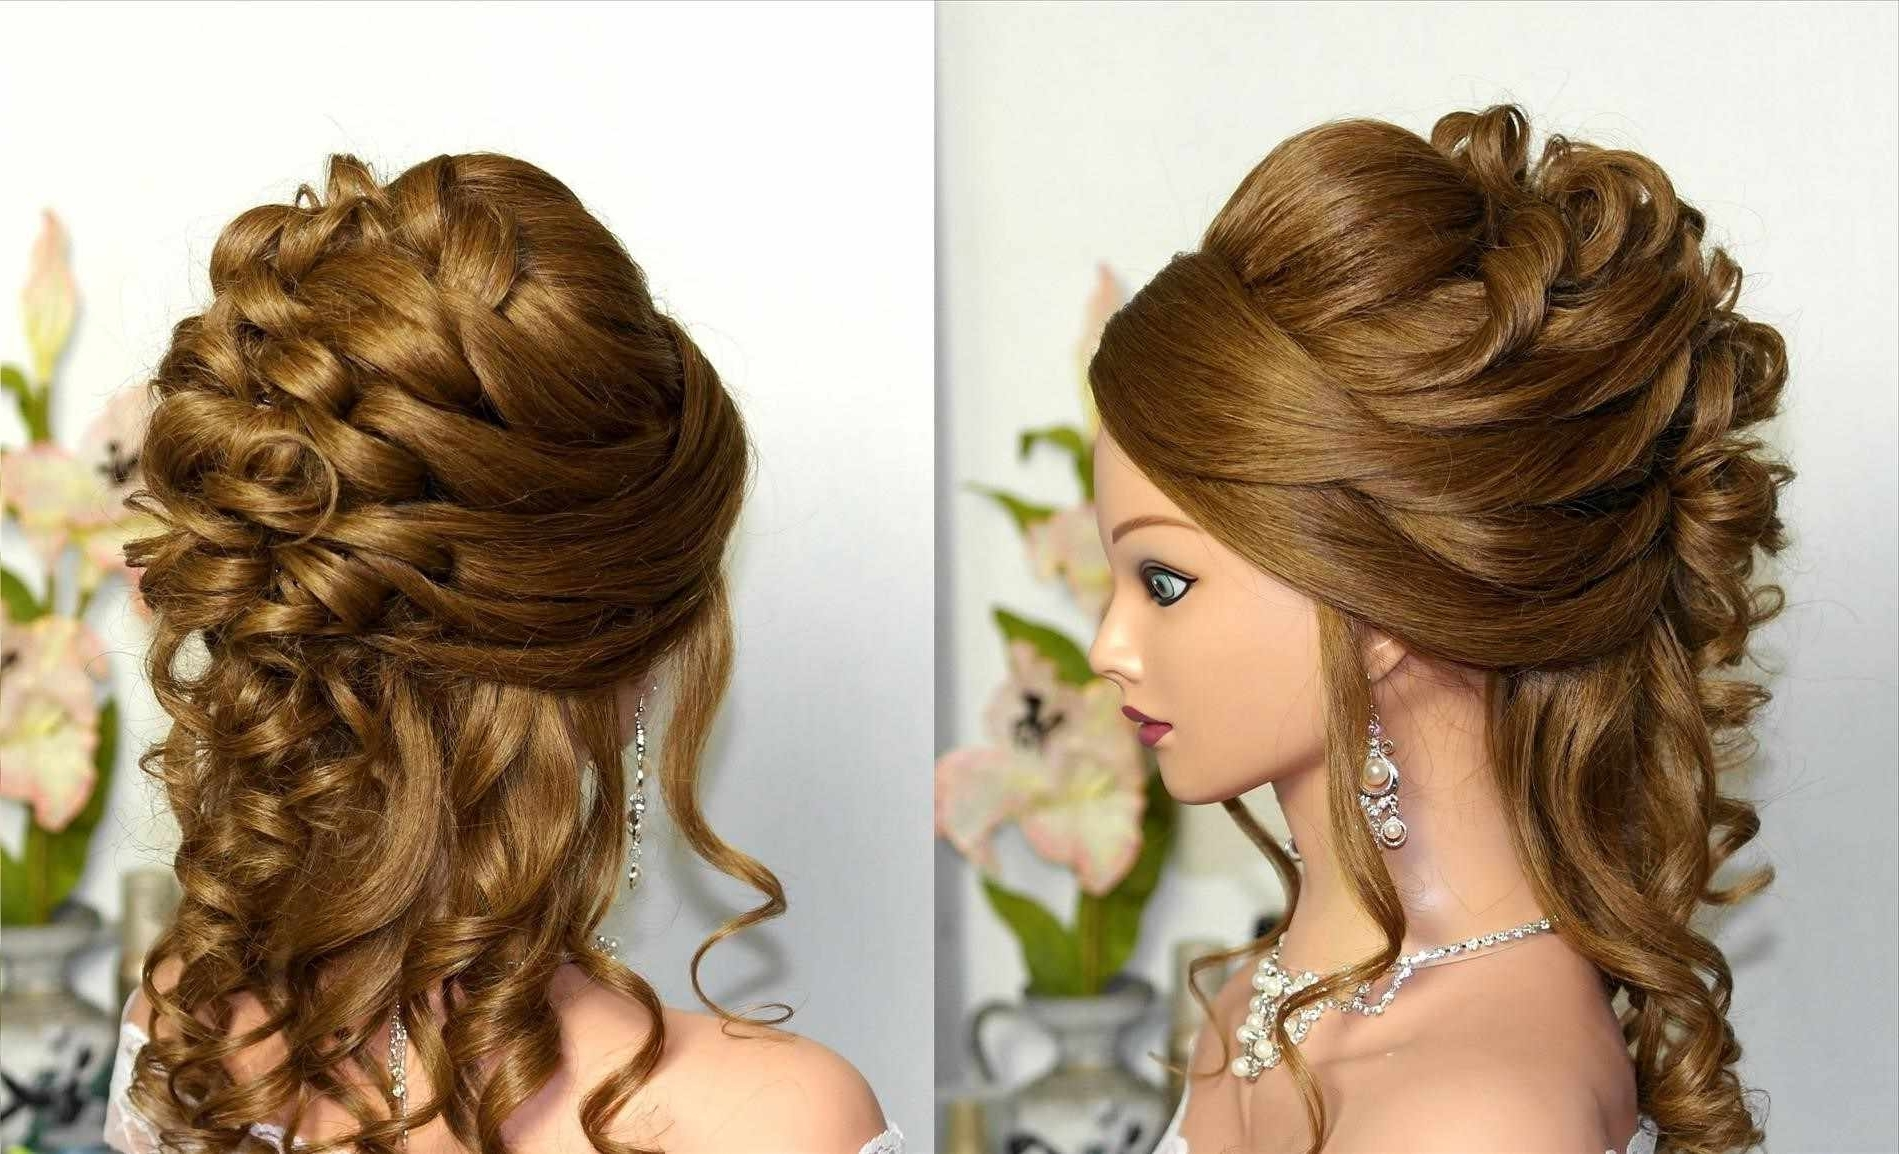 Easy Updo Hairstyles For Medium Hair Hairstyle Fodo Women Impressive With Easy Updo Hairstyles For Long Thick Hair (View 8 of 15)